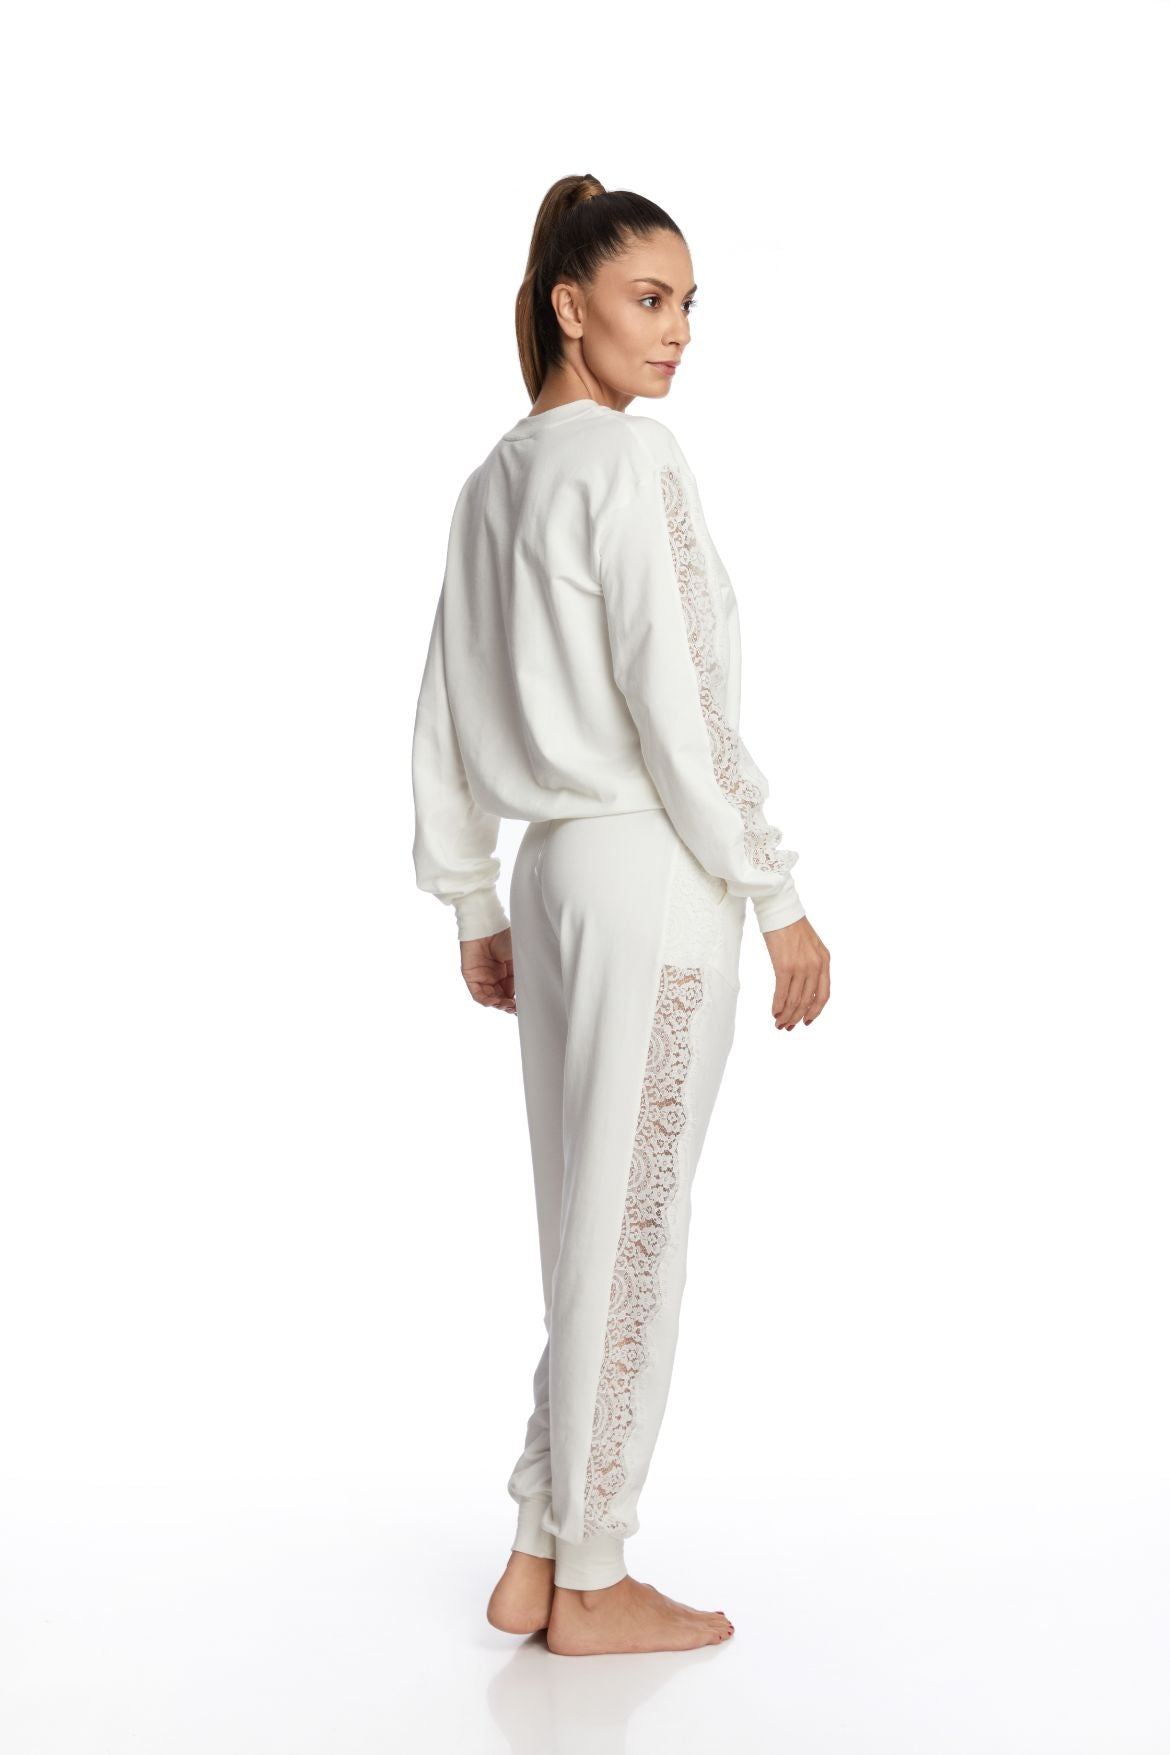 I.D. Sarrieri Modal and lace cream long sleeve loungewear blouse